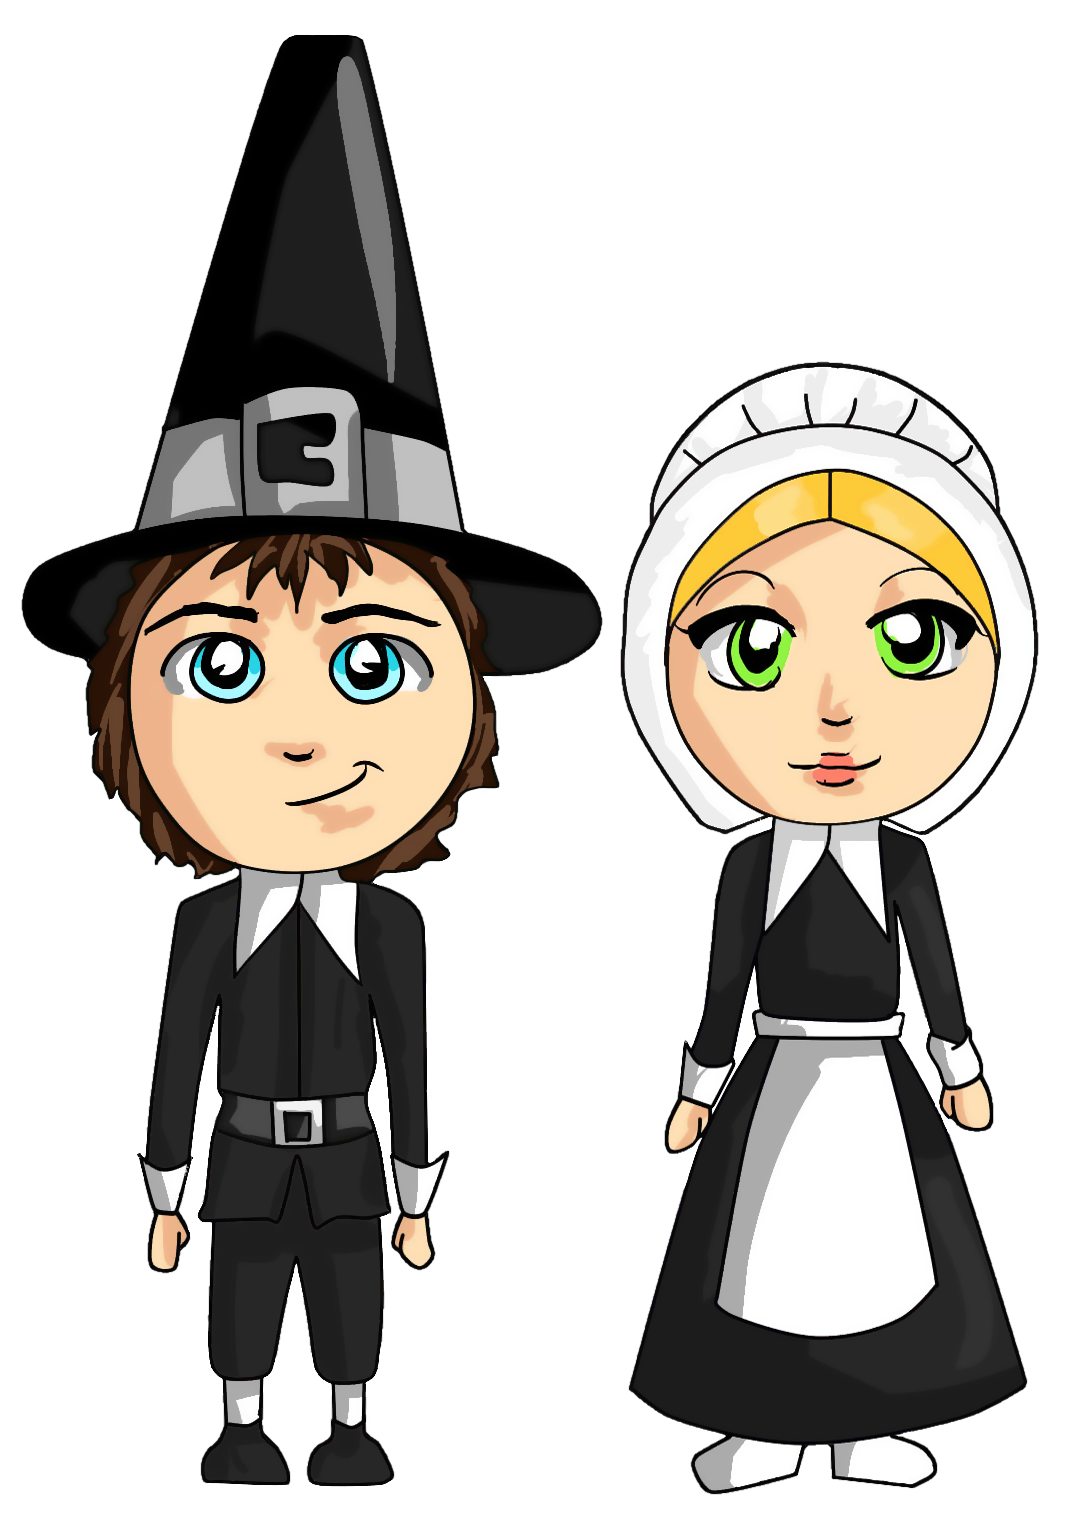 Transparent png gallery yopriceville. Pilgrims clipart